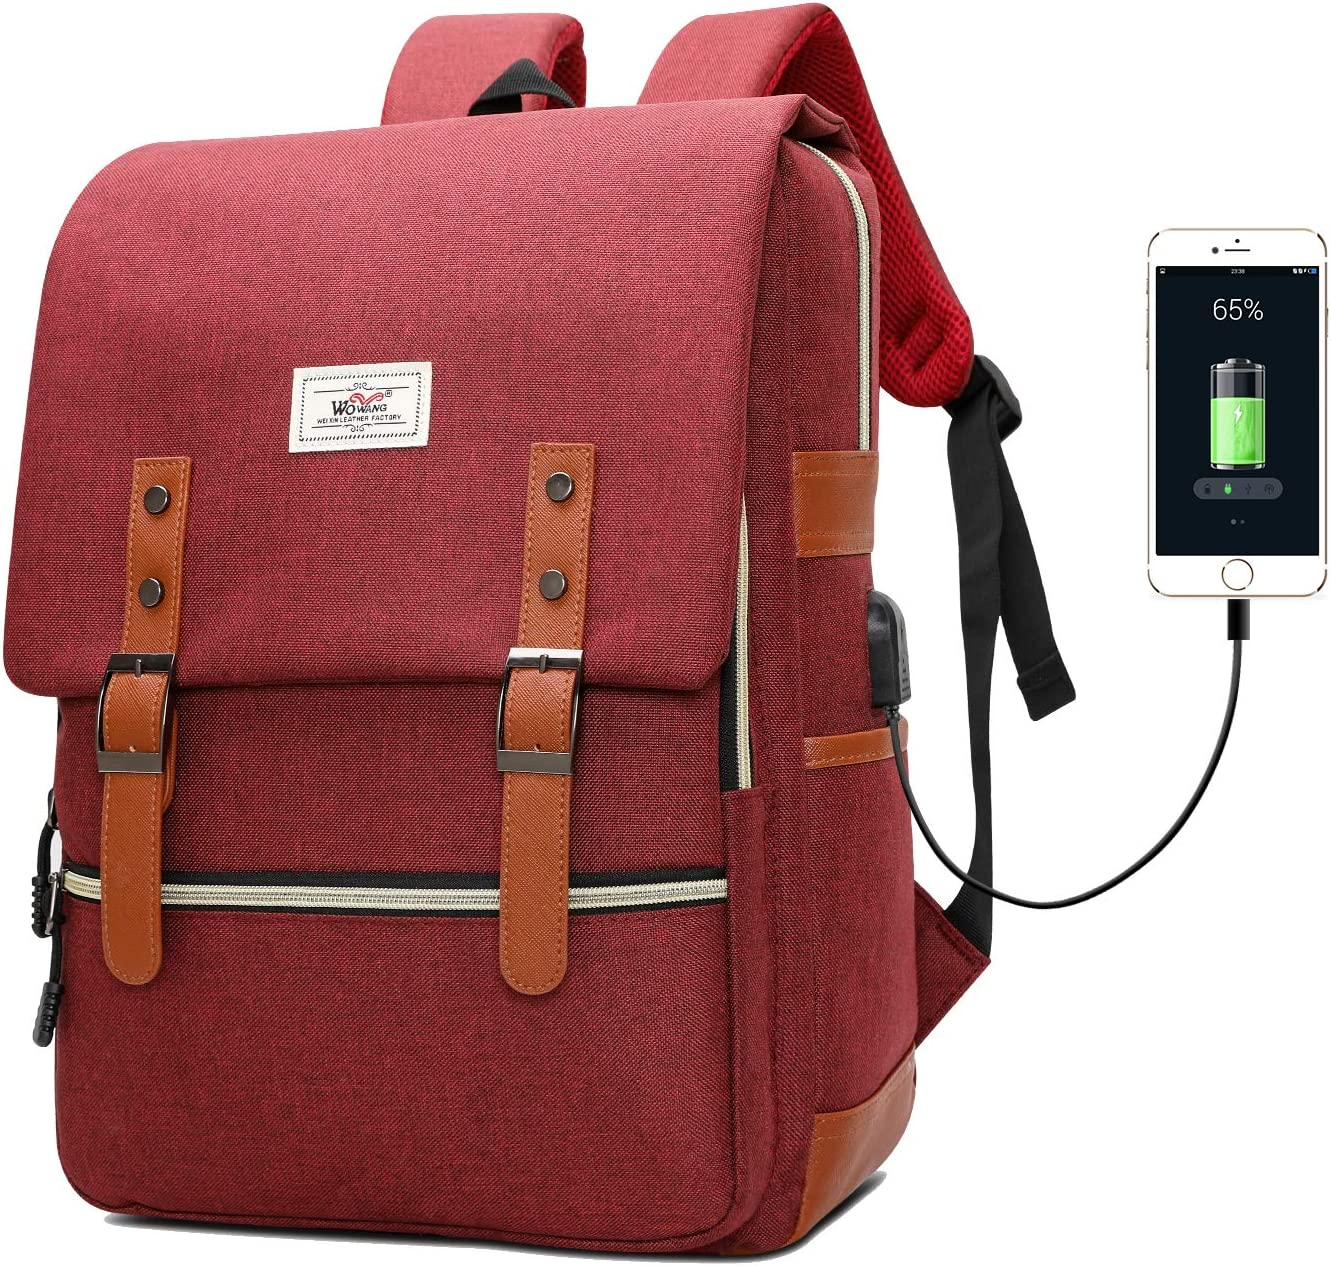 Vintage Laptop Backpack for Women Men Fashion College School Bag, Fits 15.6 Inch Notebook with USB Charging Port Daypack